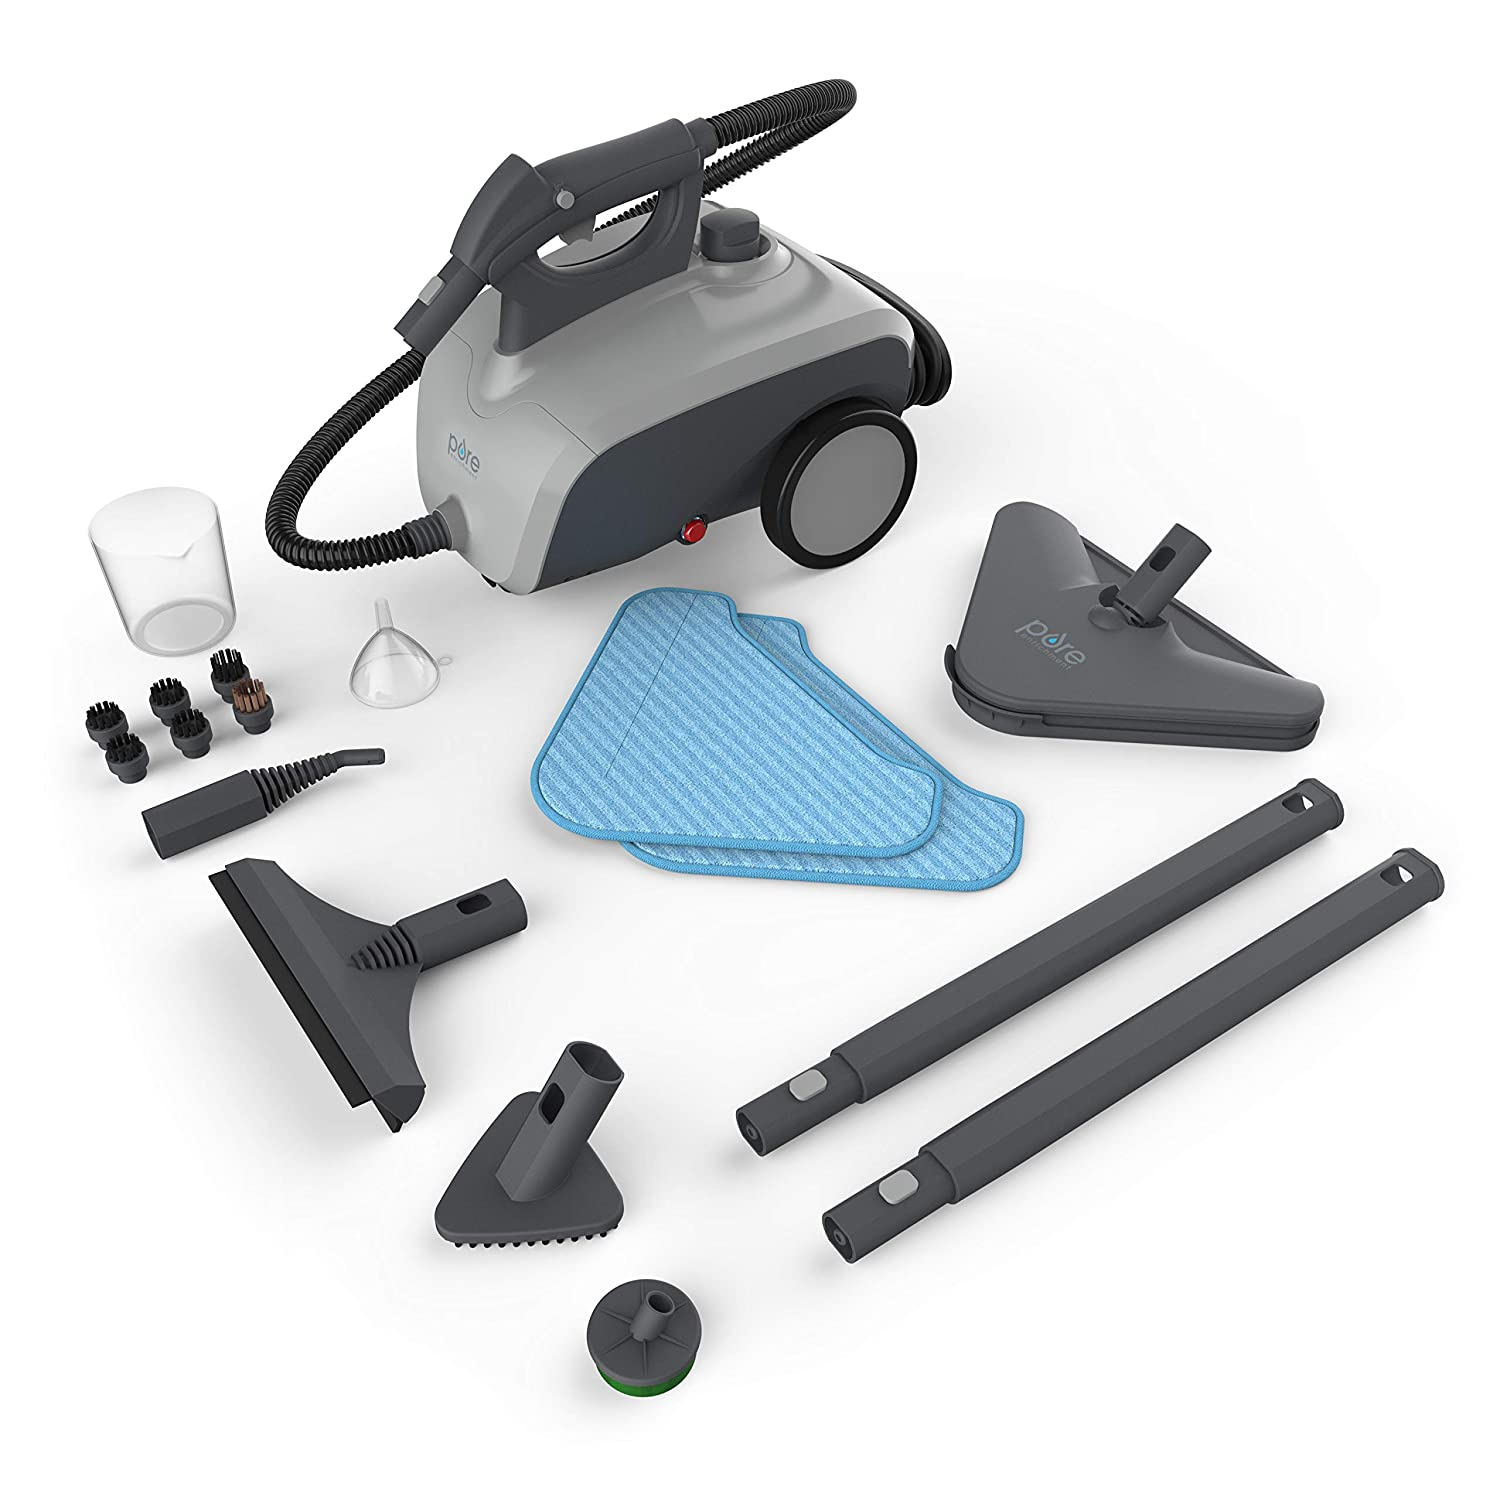 Windows Vehicles and More 18 Accessories for Deep Cleaning Floors 1500-Watt Multi-Purpose Household Steam Cleaning System BBQ Grills Pure Enrichment PureClean XL Rolling Steam Cleaner Ovens